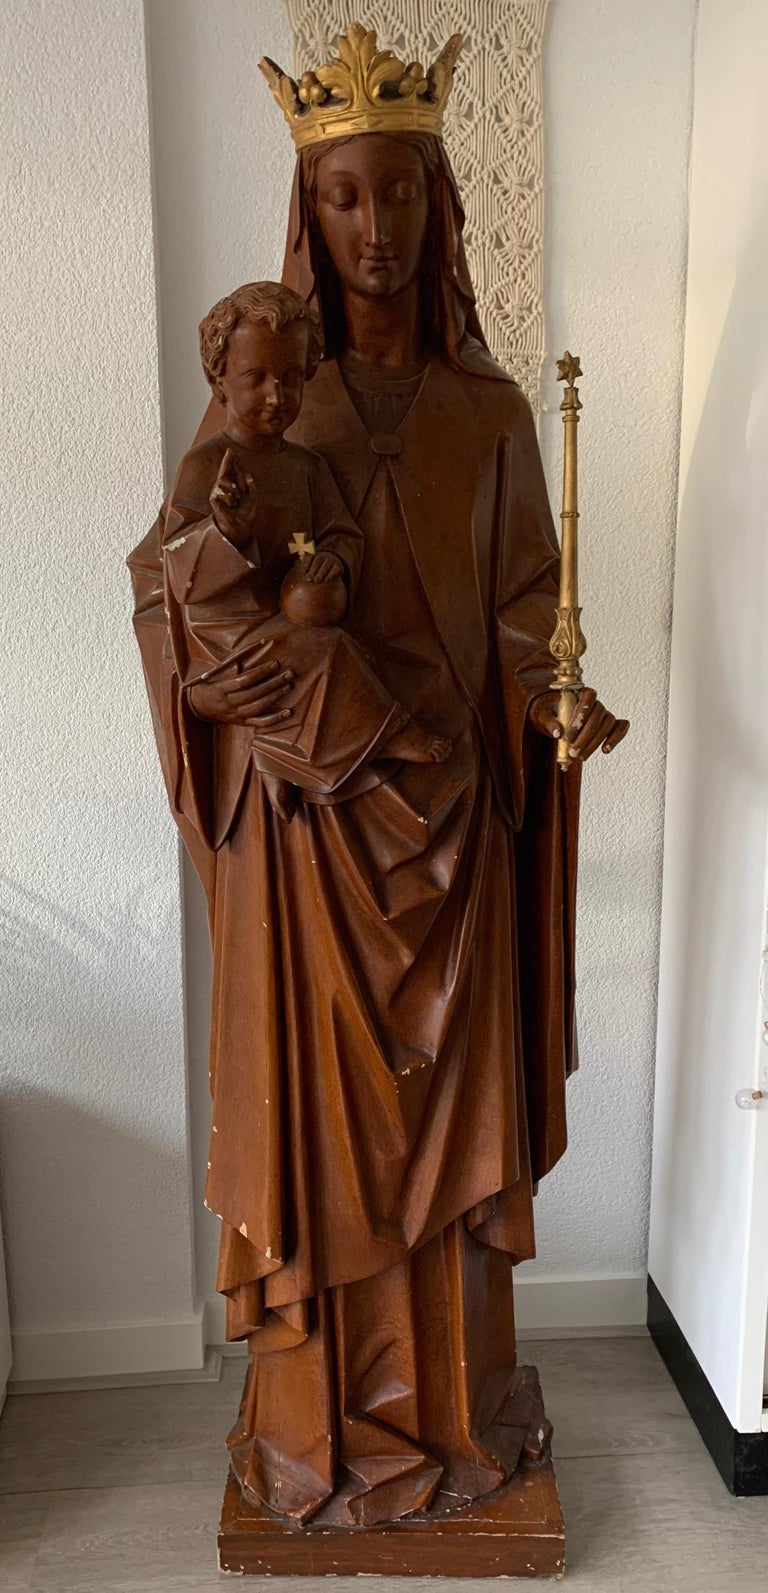 European Antique Lifesize Mary and Child Jesus Gothic Revival Wooden Church Sculpture For Sale